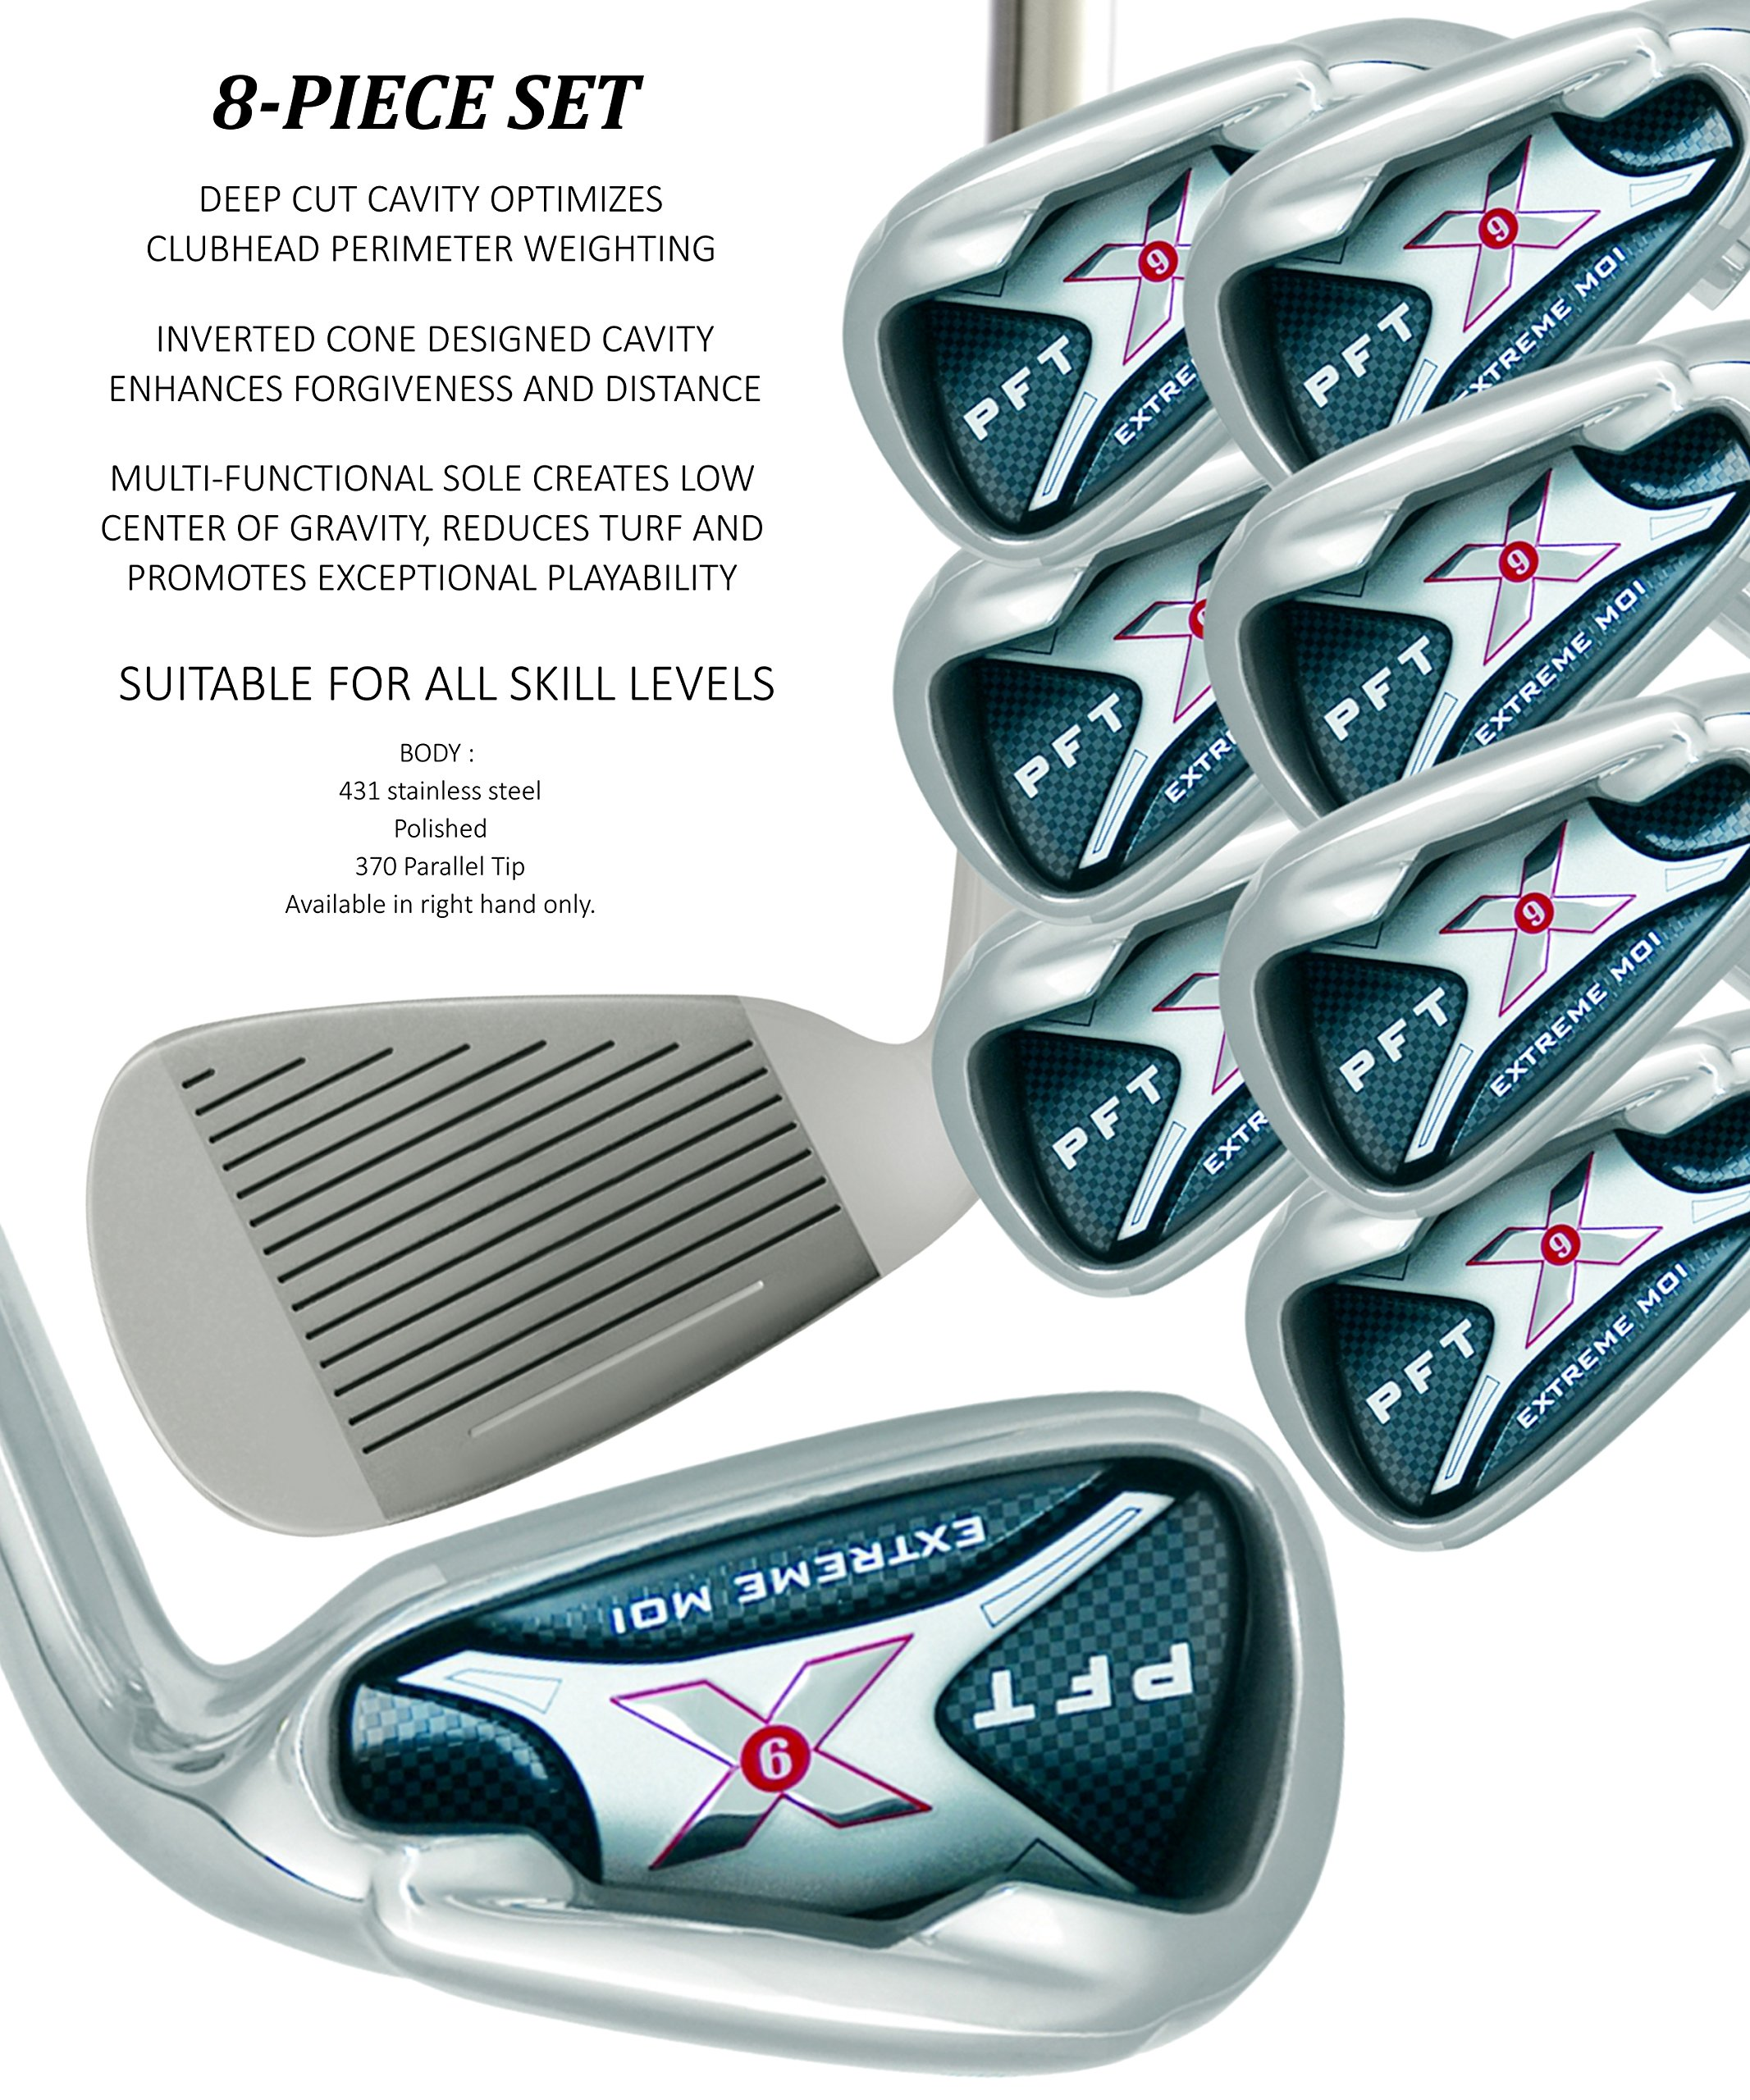 PFT X9 High Moi Extreme 9 Iron Set Golf Clubs Custom Made Right Hand Regular R Flex Steel Shafts Complete Mens Irons Ultra Forgiving OS Oversized Wide Sole Ibrid Club